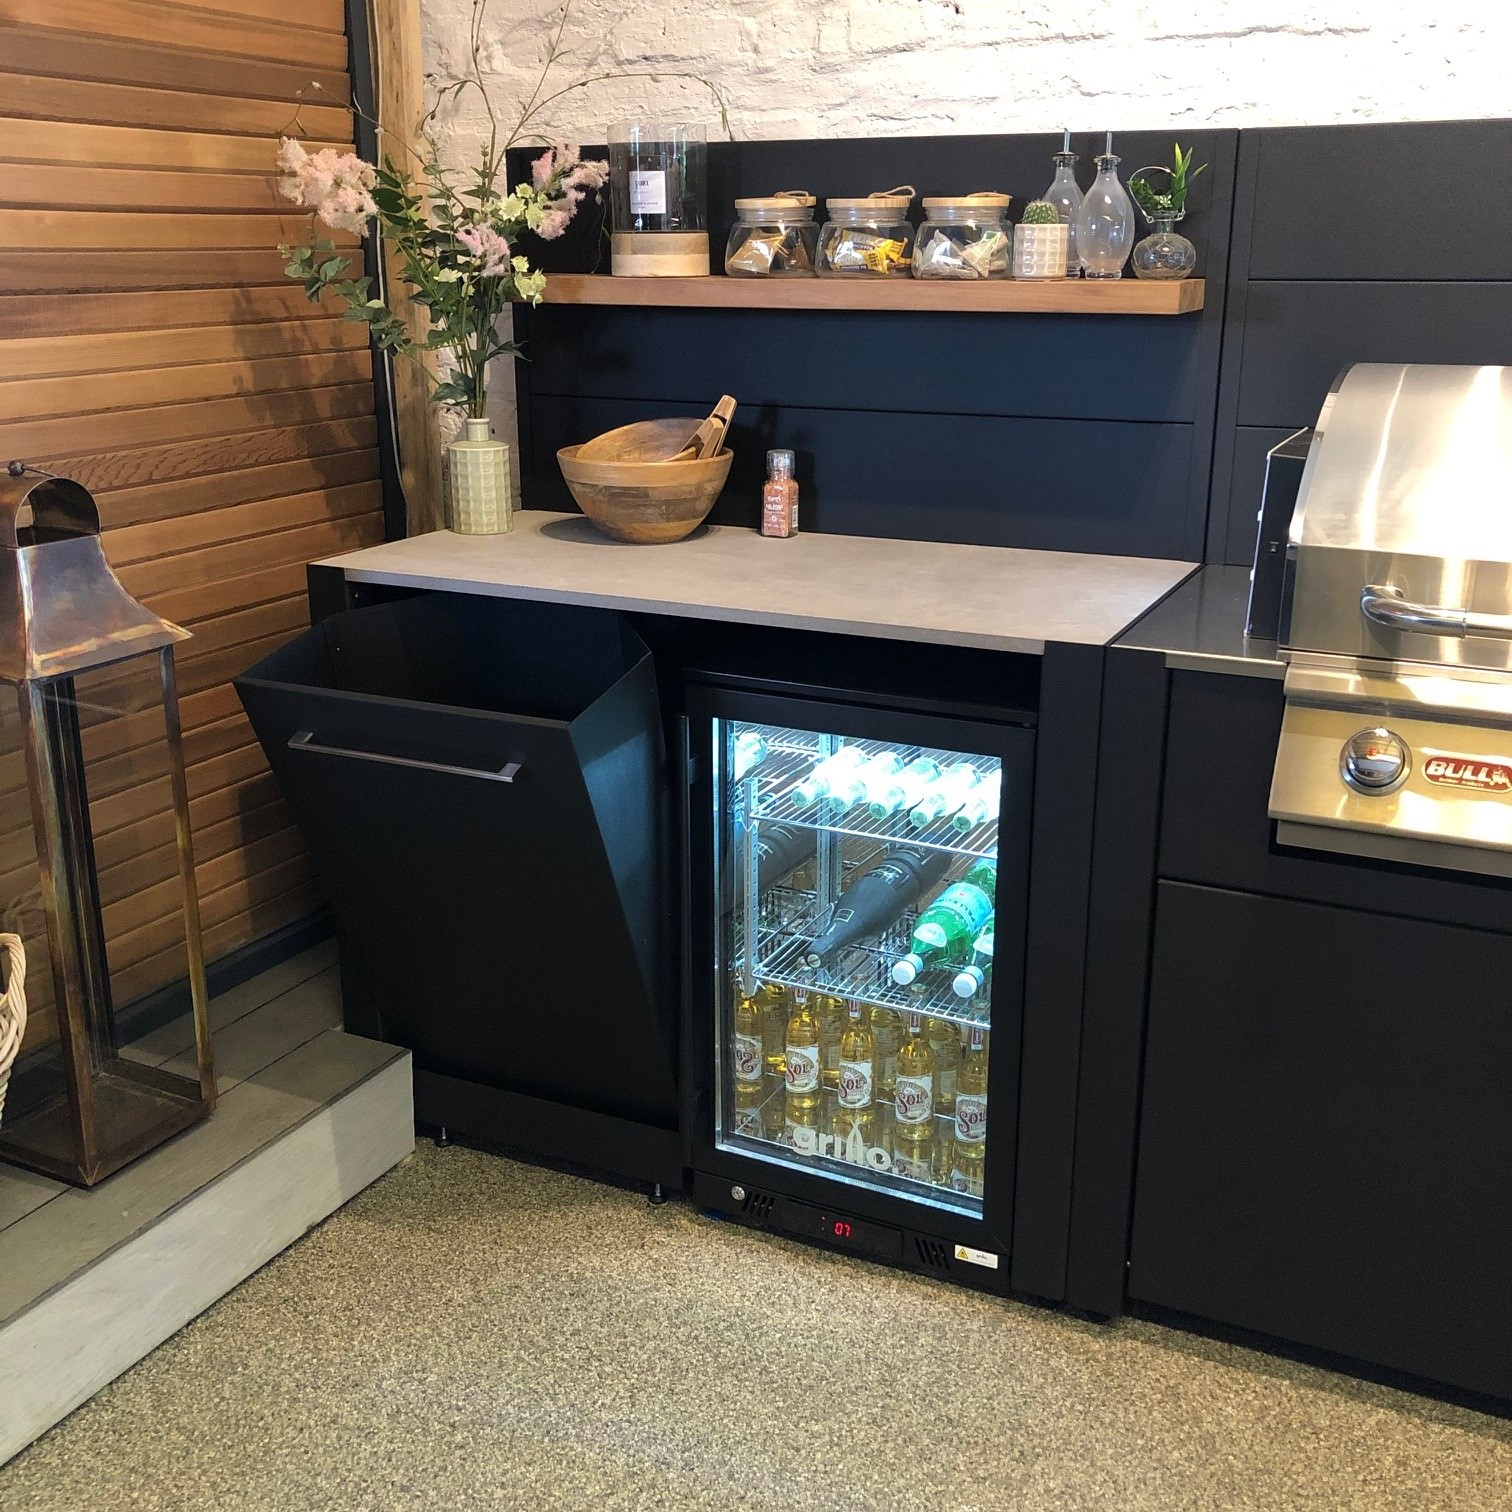 Grillo vantage Fridge by Garden House Design